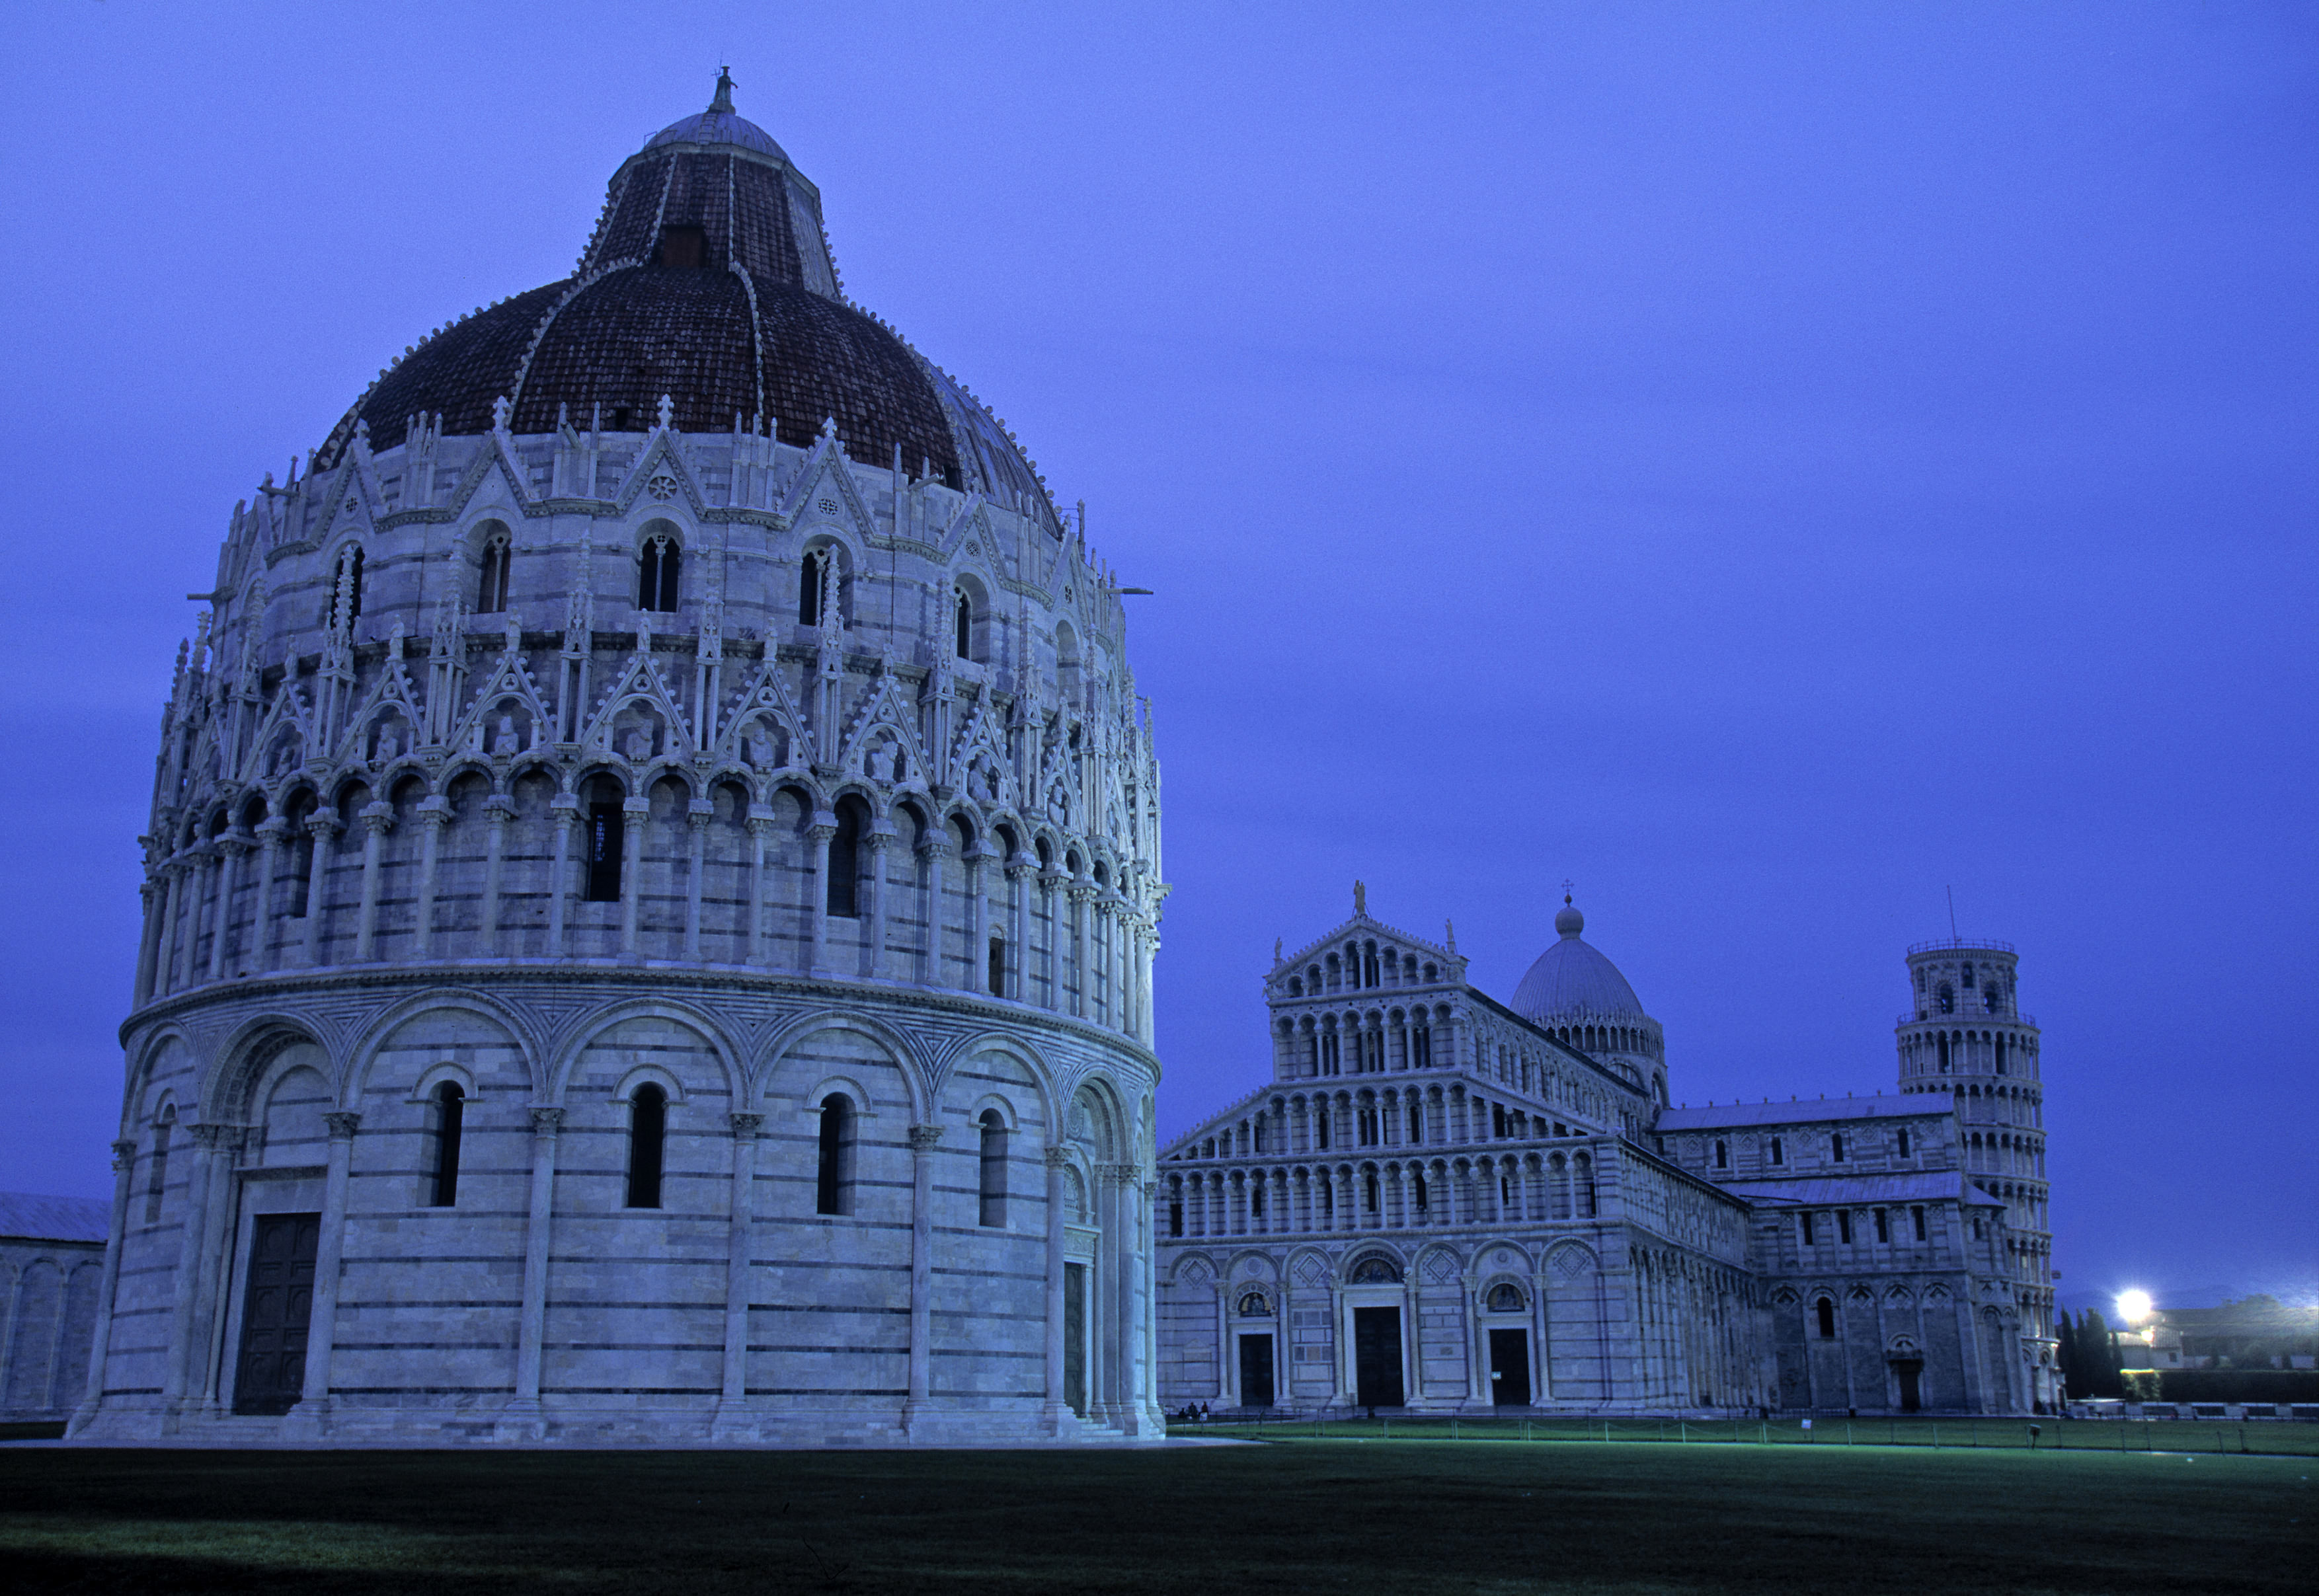 Battistero | Pisa, Italy Attractions - Lonely Planet